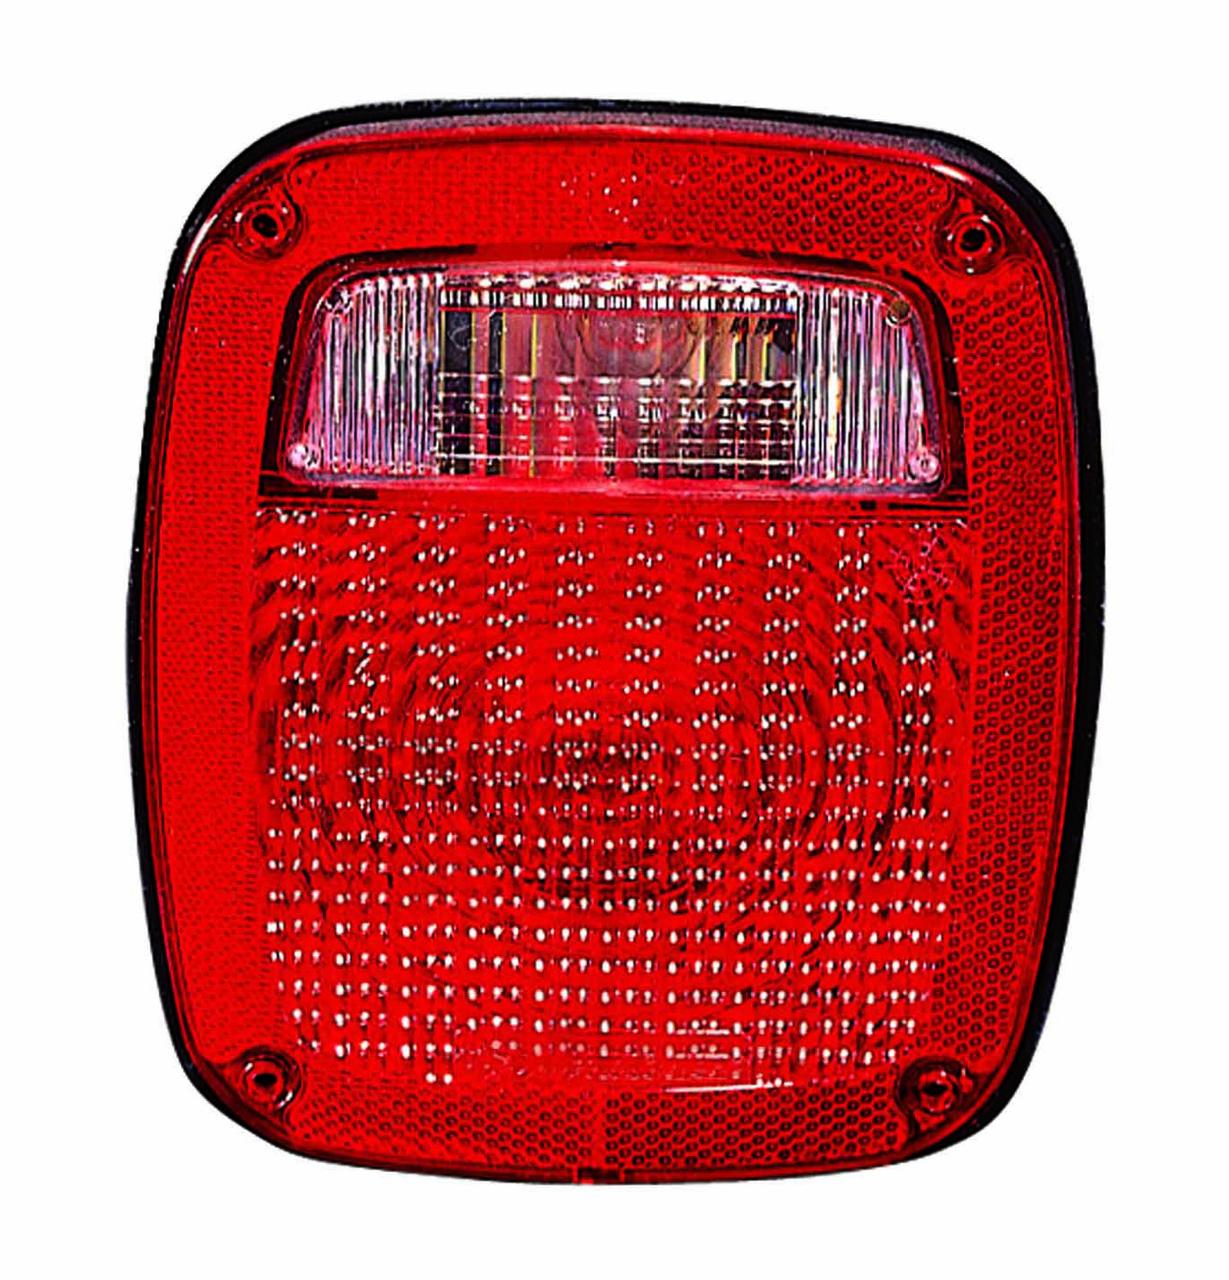 Jeep Wrangler 1993 1994 1995 1996 1997 1998 1999 right passenger tail light